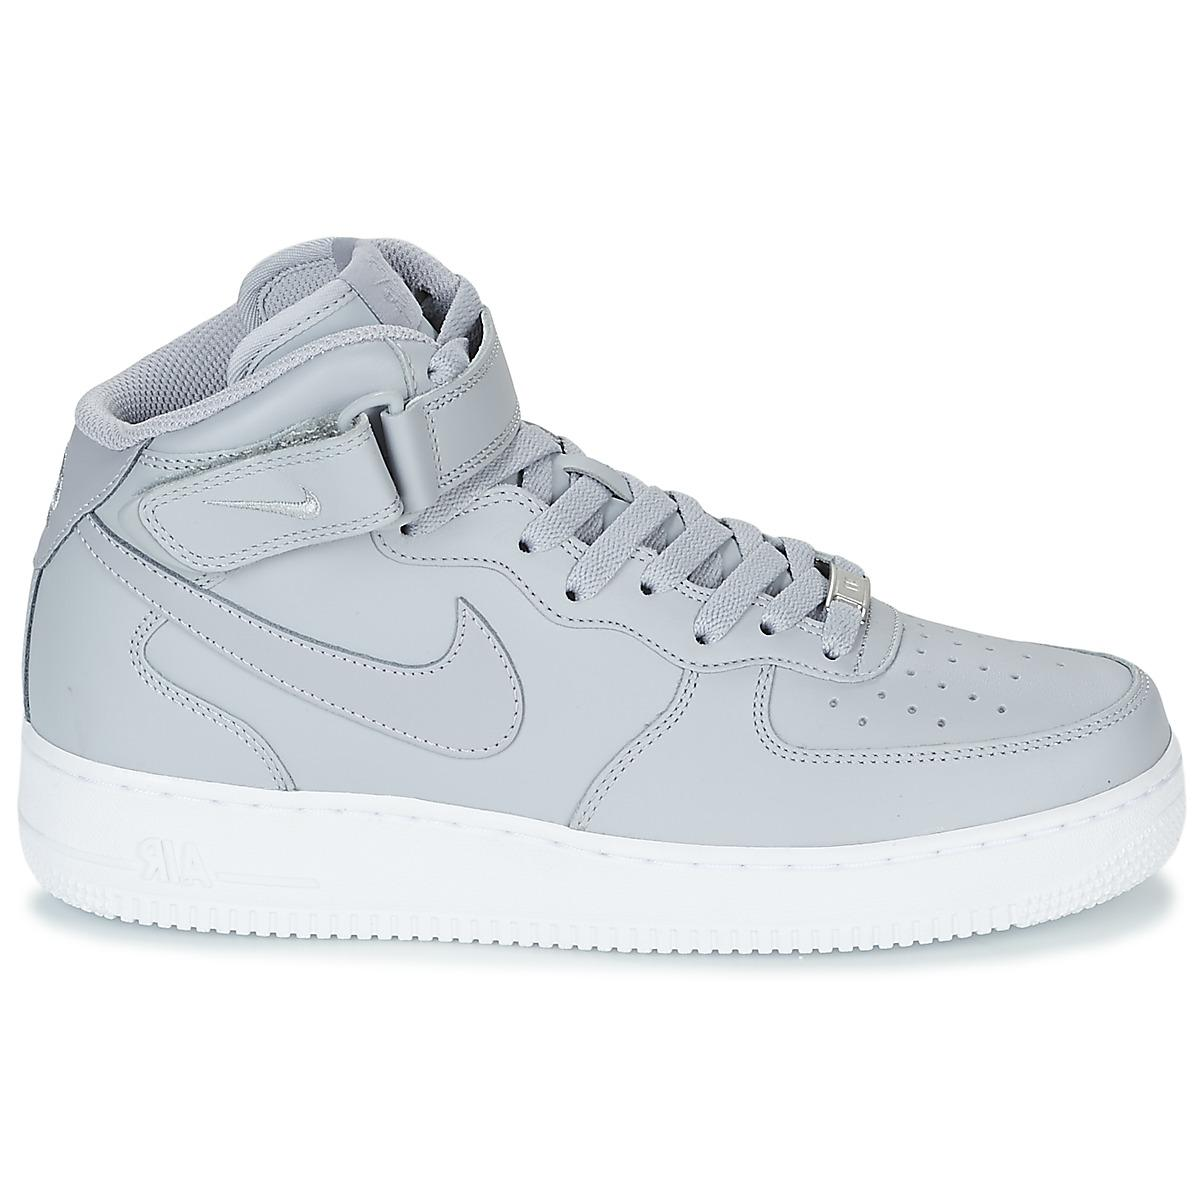 Nike Leather Air Force 1 Mid Wolf Grey White (2007) in Grey for Men